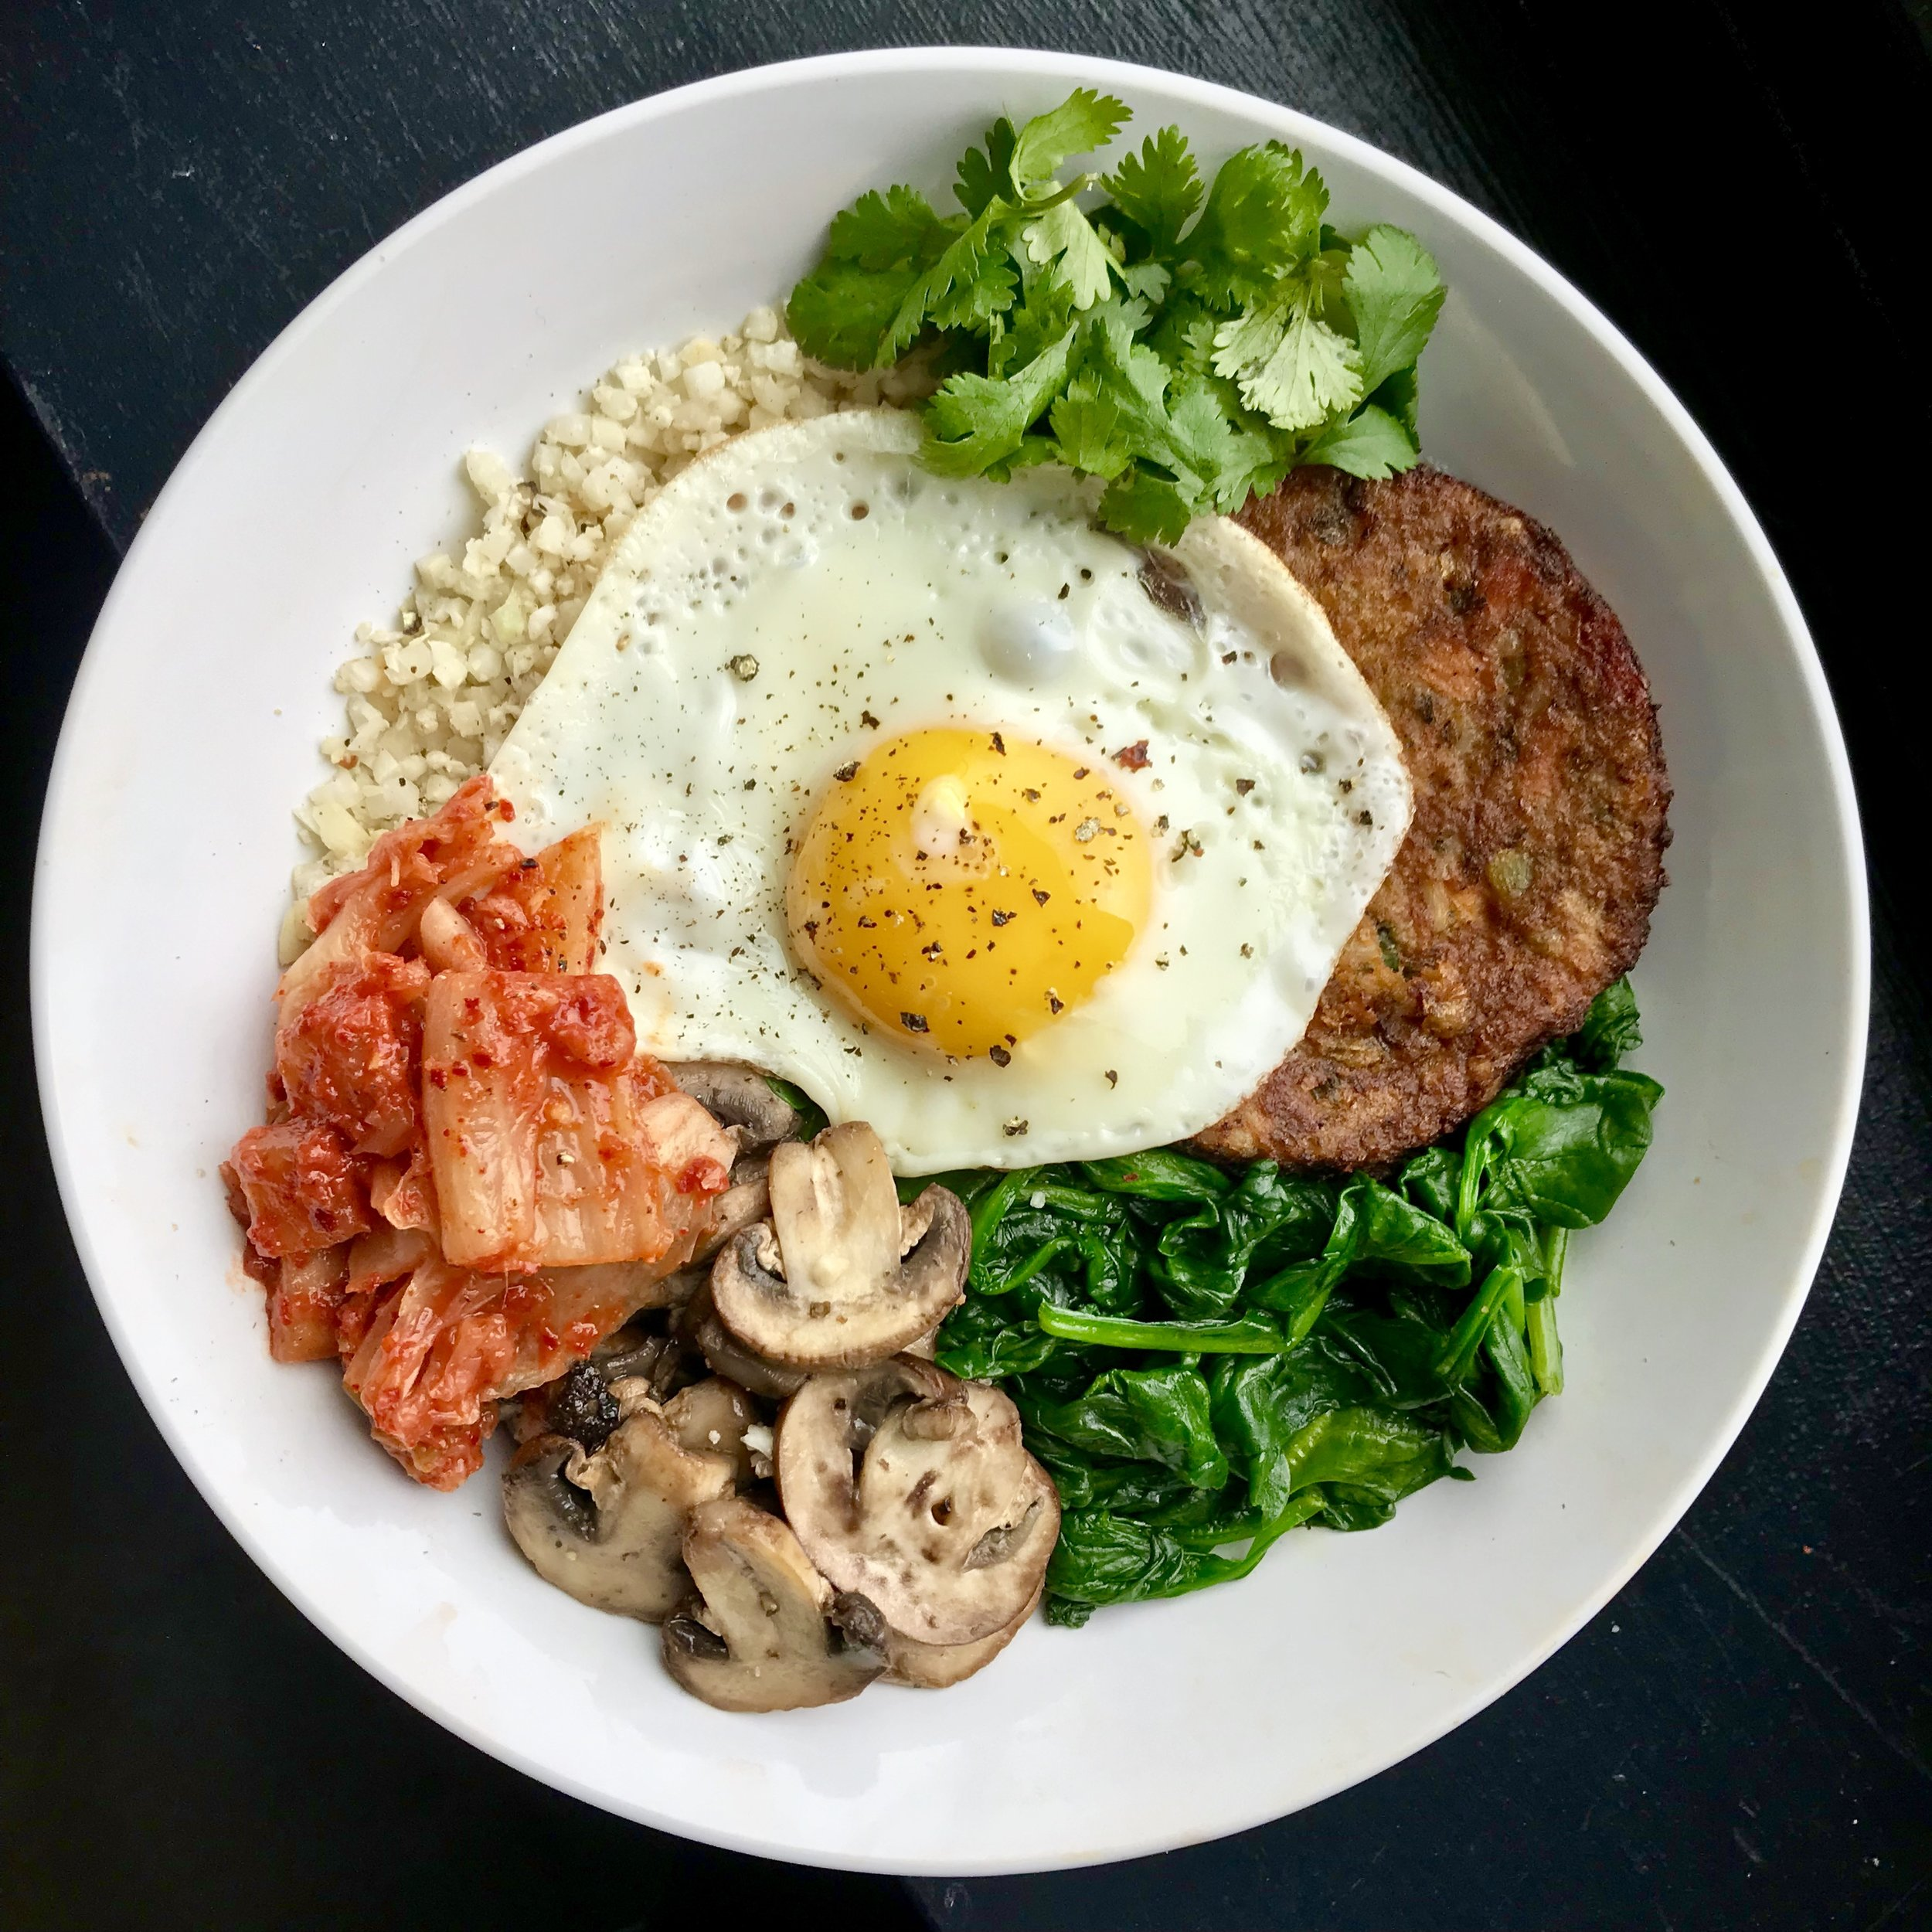 If there is a bibimbap bowl on a restaurant menu there is a 99% chance that I will be ordering it. There's something about a big bowl of crispy rice, savory veggies, tangy pickles and a runny egg that I cannot resist (my mouth is watering just typing this).  This is not your traditional bibimbap, but I might like this lightened up version even better! We've got garlicky cauliflower rice,sautéed veggies, a crispy fried egg, spicy kimchi, cilantro and a major flavor boost from the Asian veggie burger. The best part: it takes just 15 minutes to cook from start to finish with the help of a couple short-cuts (like pre-riced cauliflower and a frozen Dr. Praeger's veggie burger).